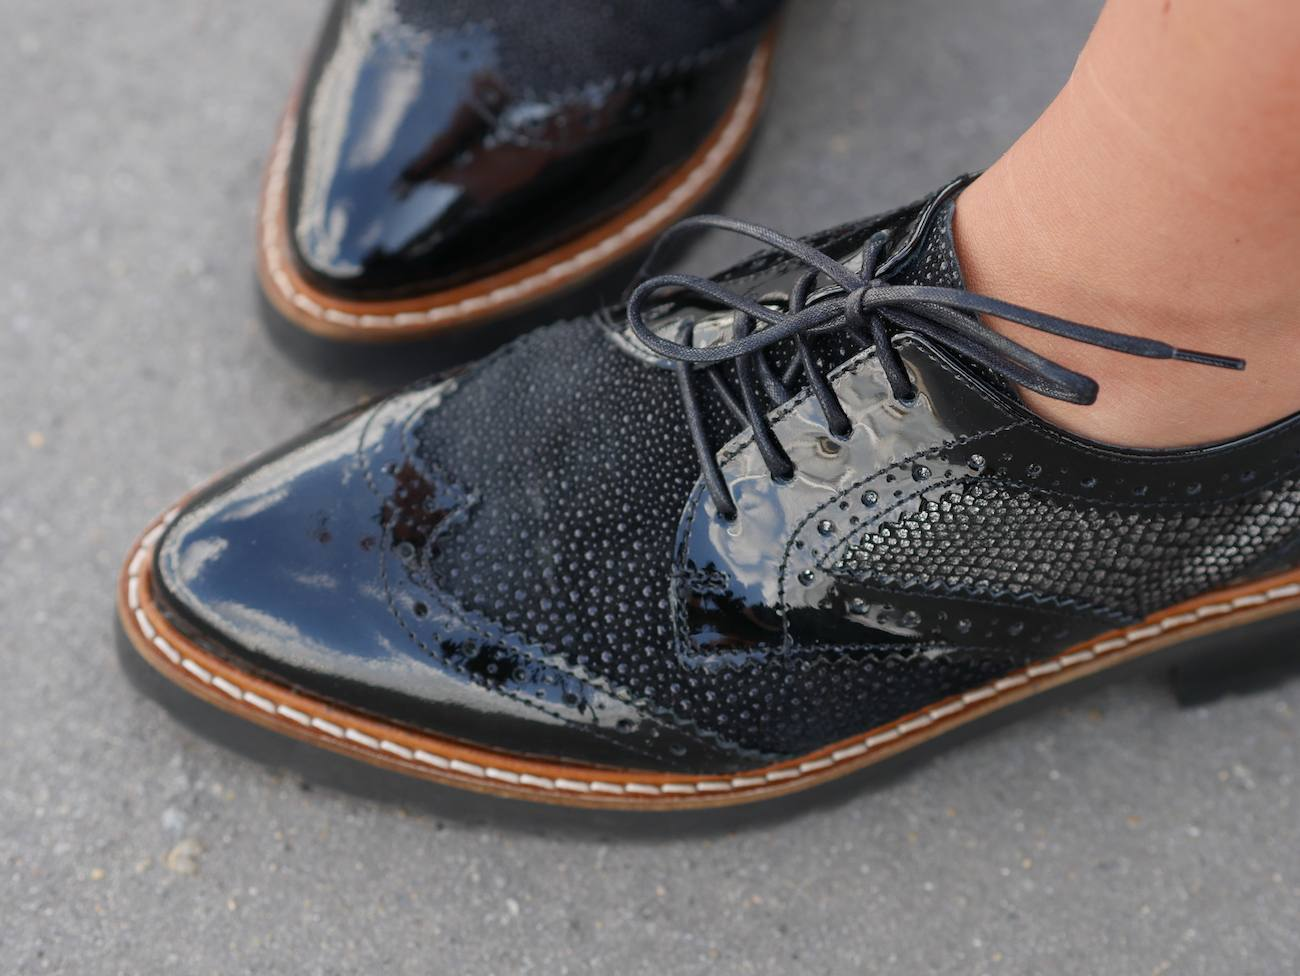 philippe-morvan-chaussures-blog-mode-16